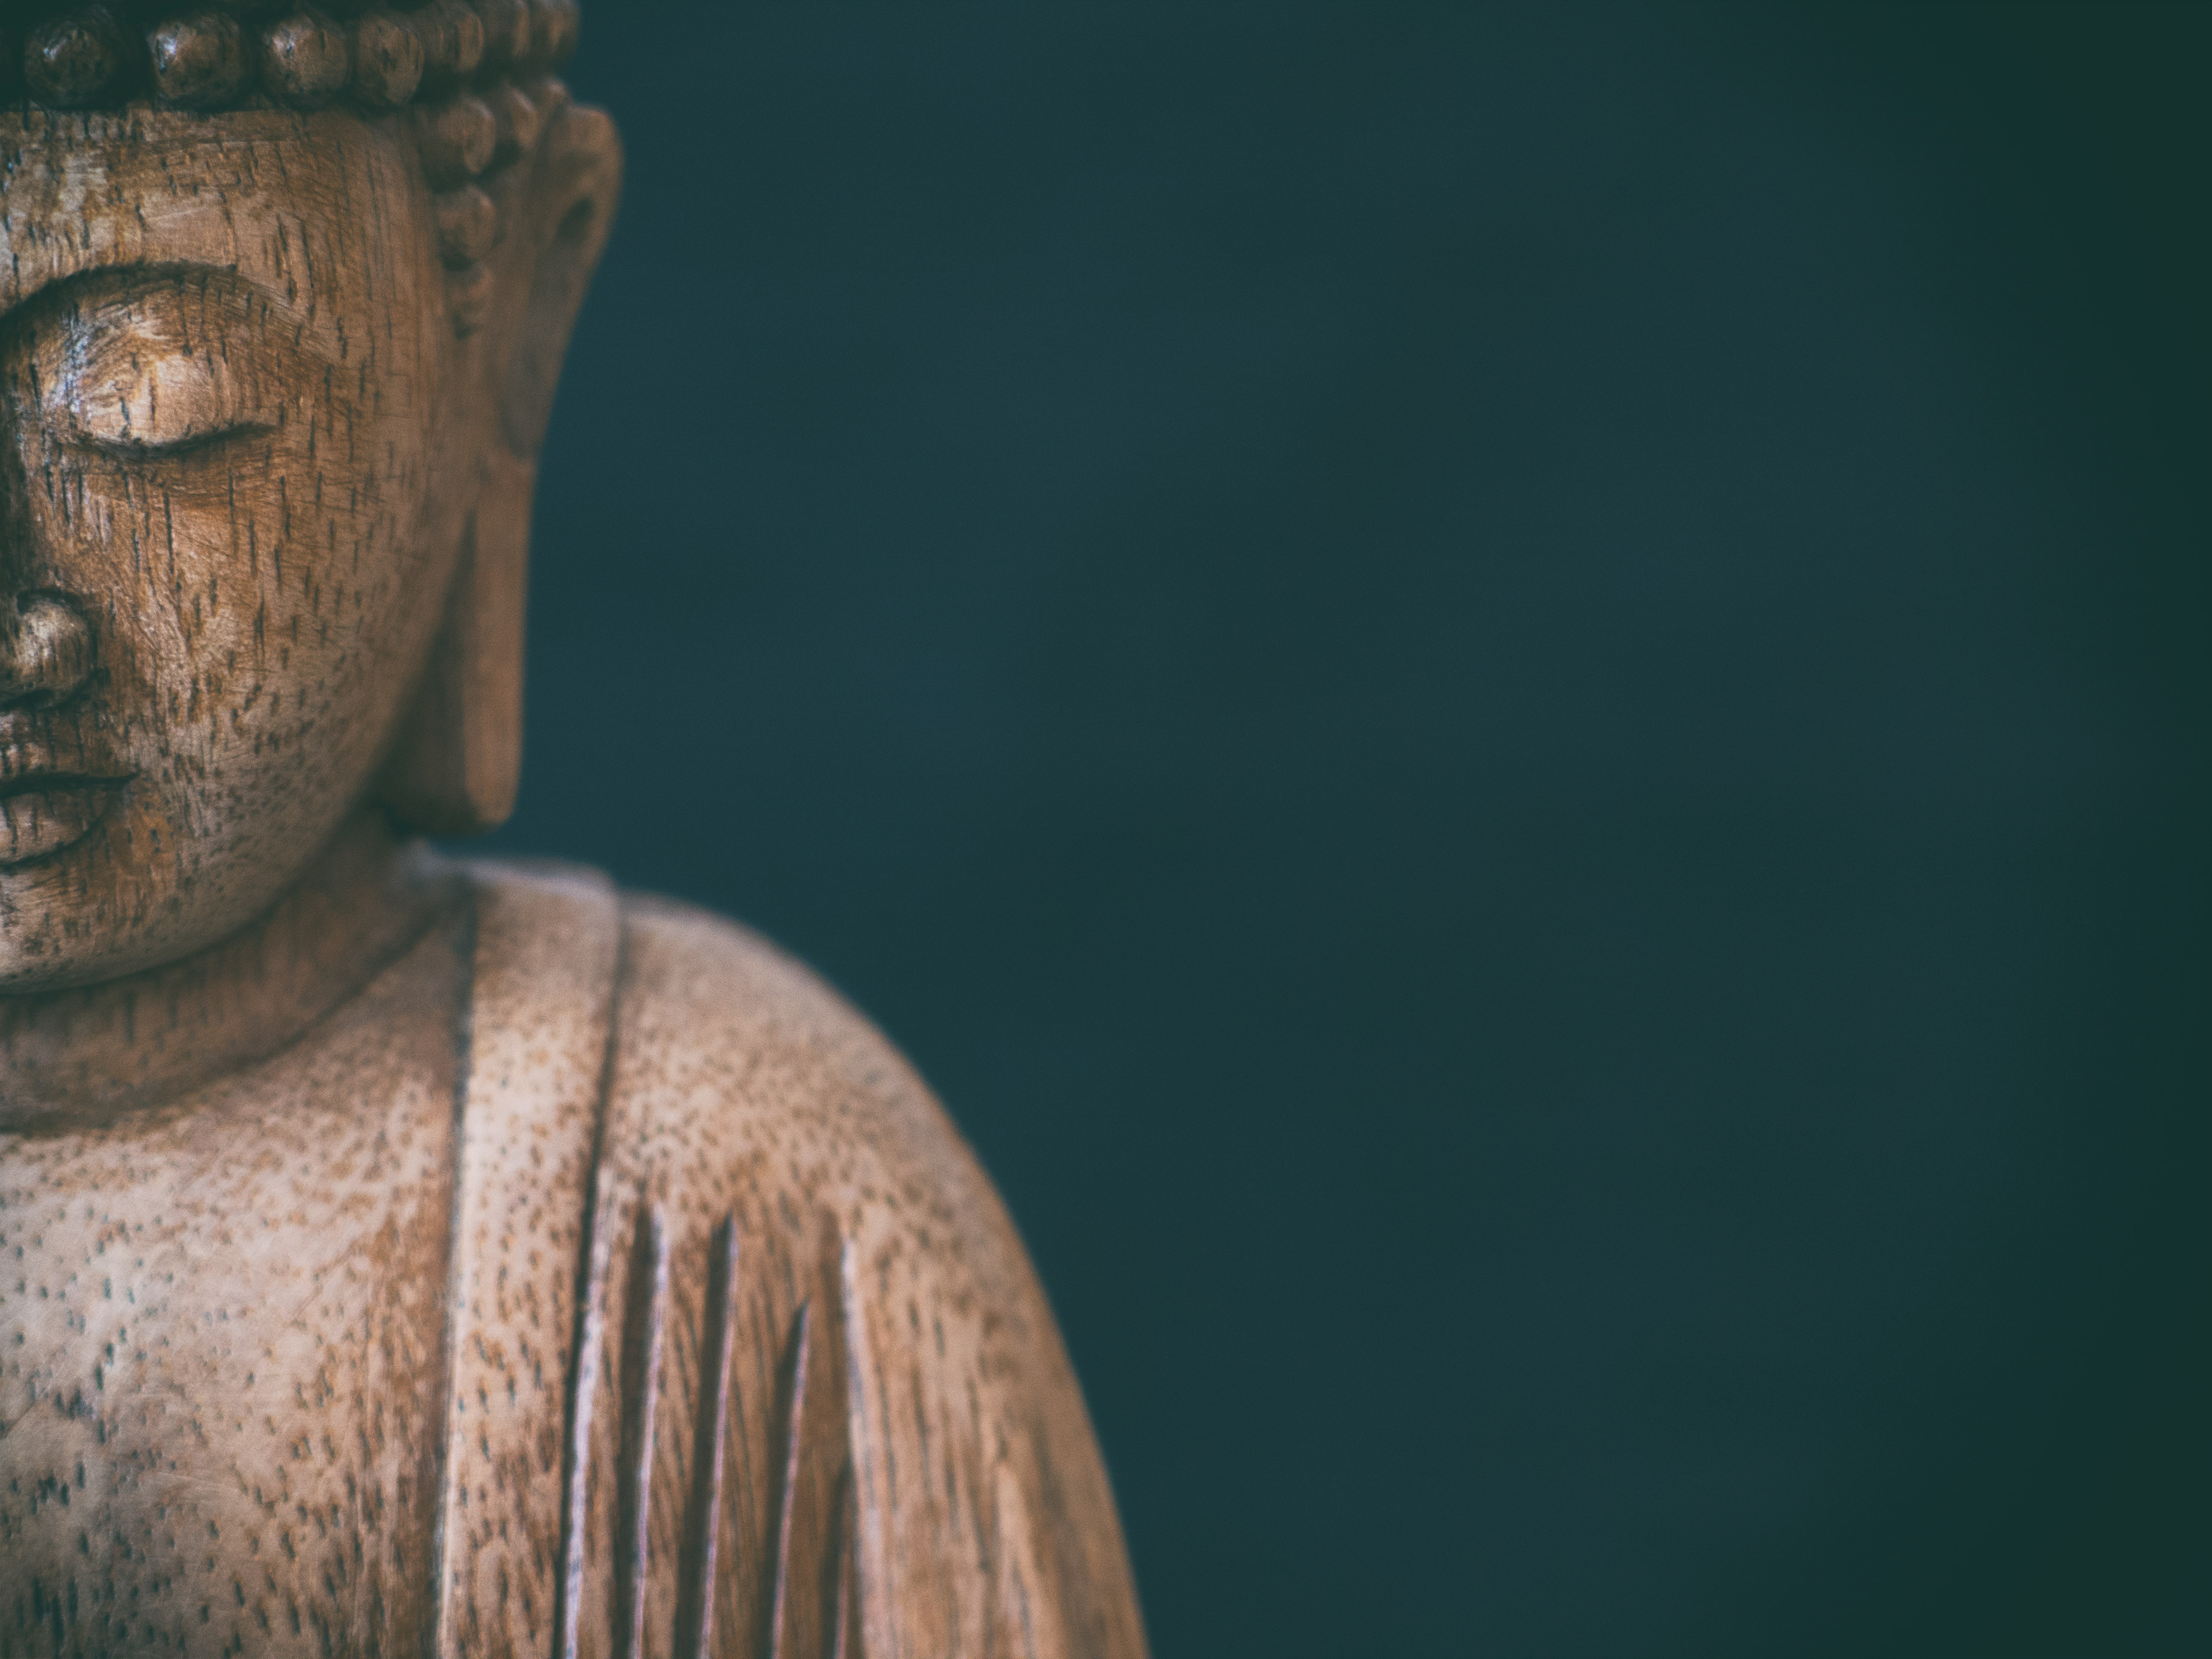 Buddha Zen Wallpaper Stock Photo LibreShot 3500x2625